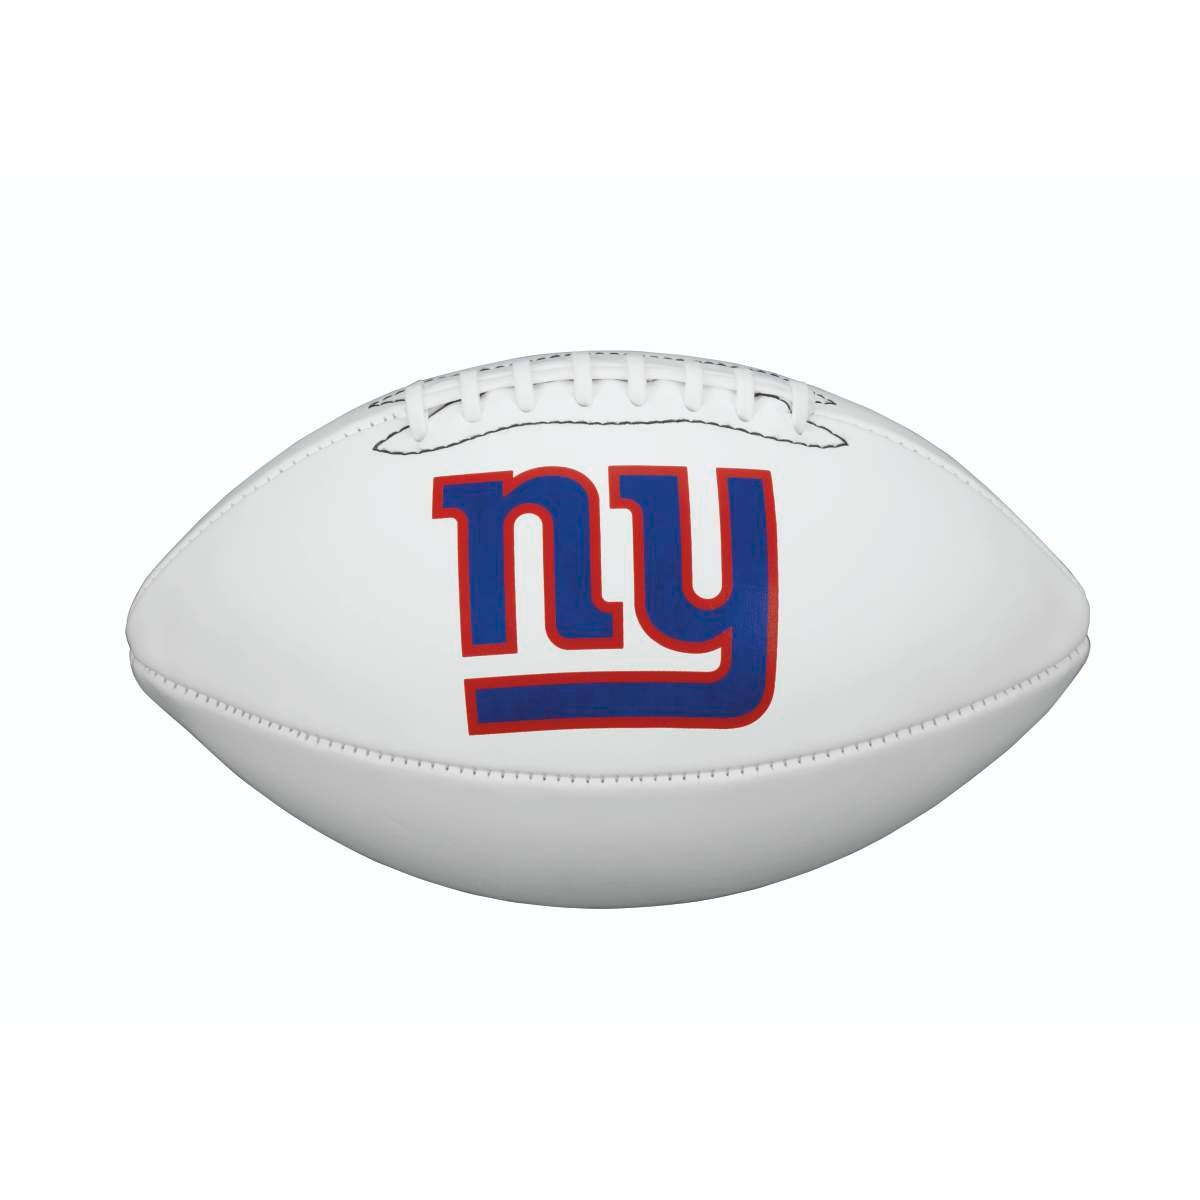 NFL TEAM LOGO AUTOGRAPH FOOTBALL - OFFICIAL, NEW YORK GIANTS